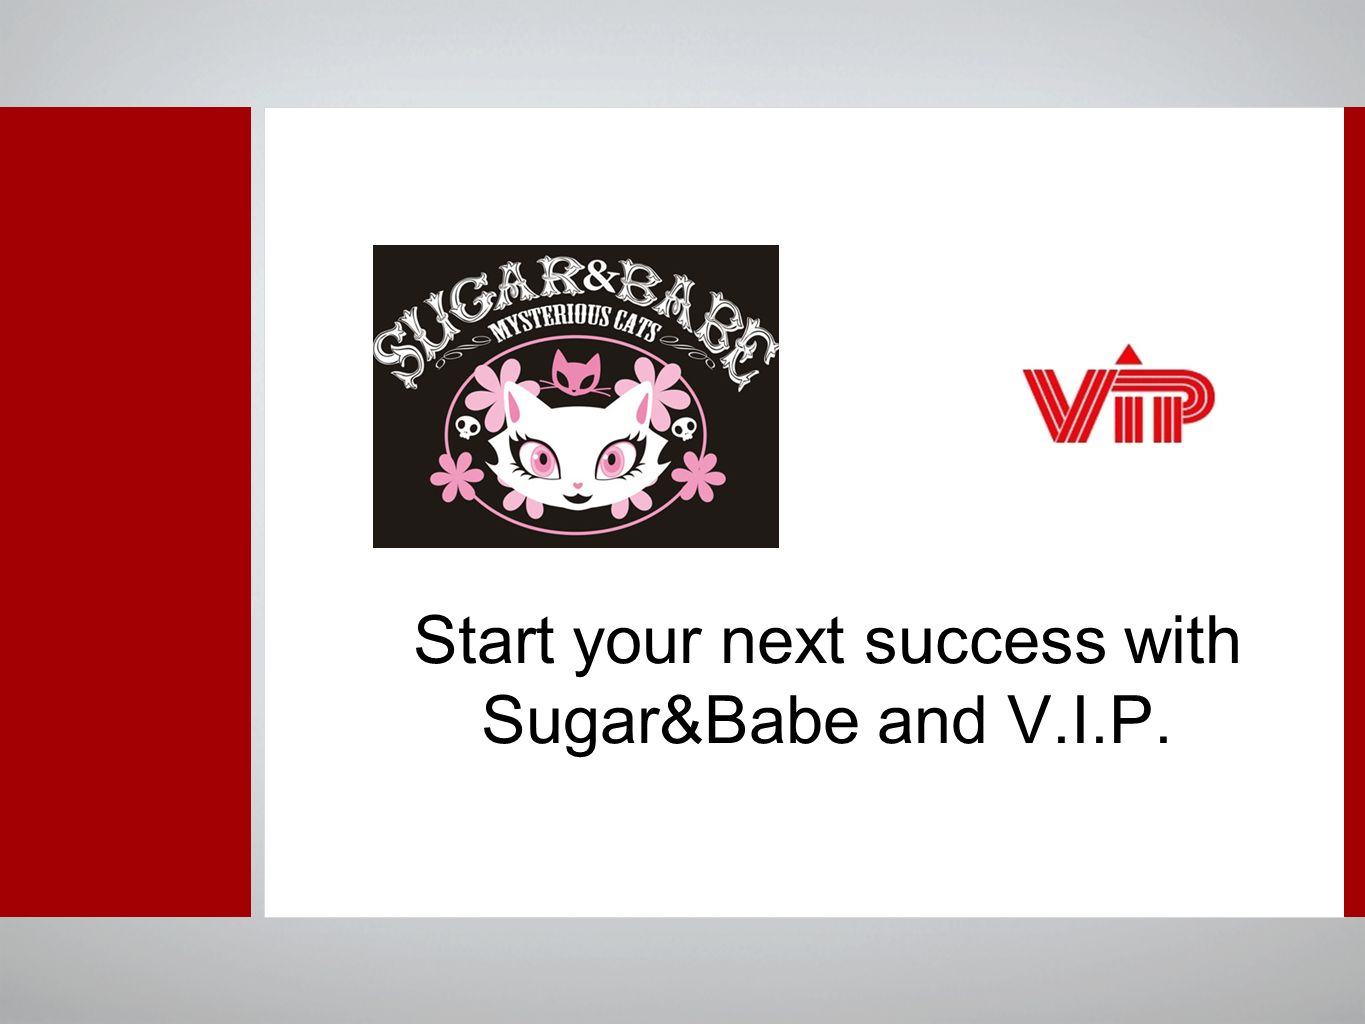 Start your next success with Sugar&Babe and V.I.P.